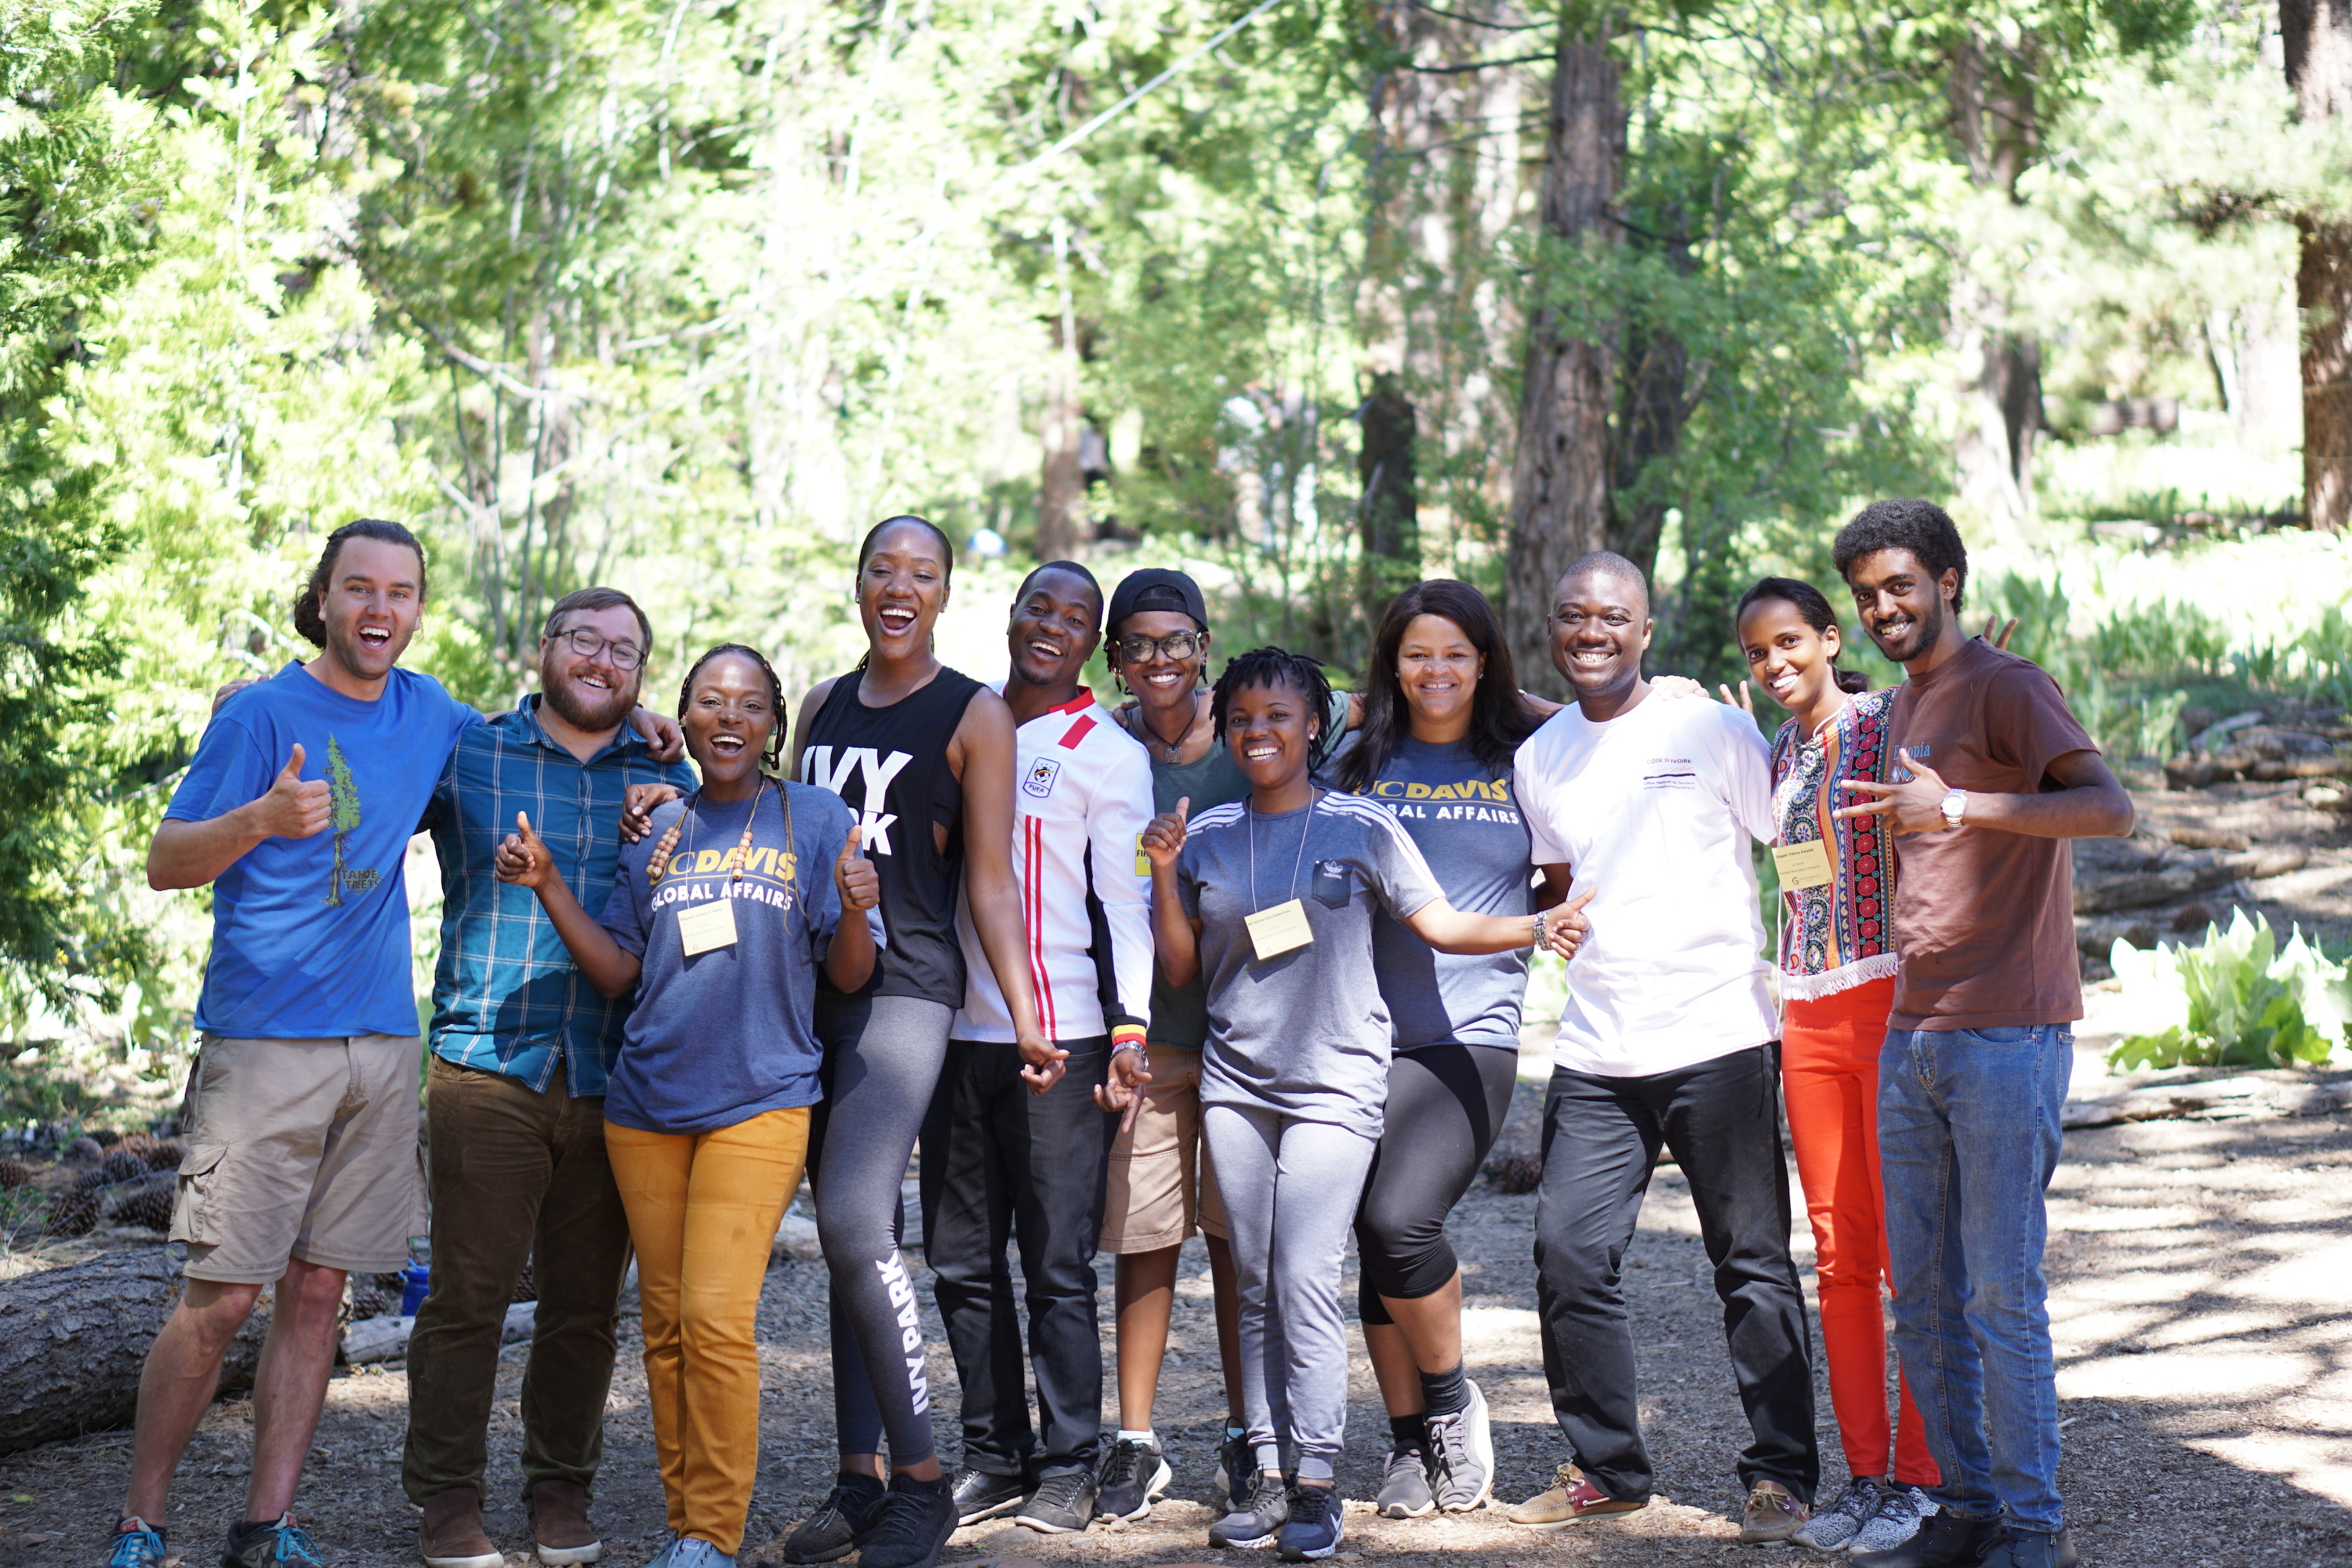 2018 Mandela Fellows at Lake Tahoe for team building